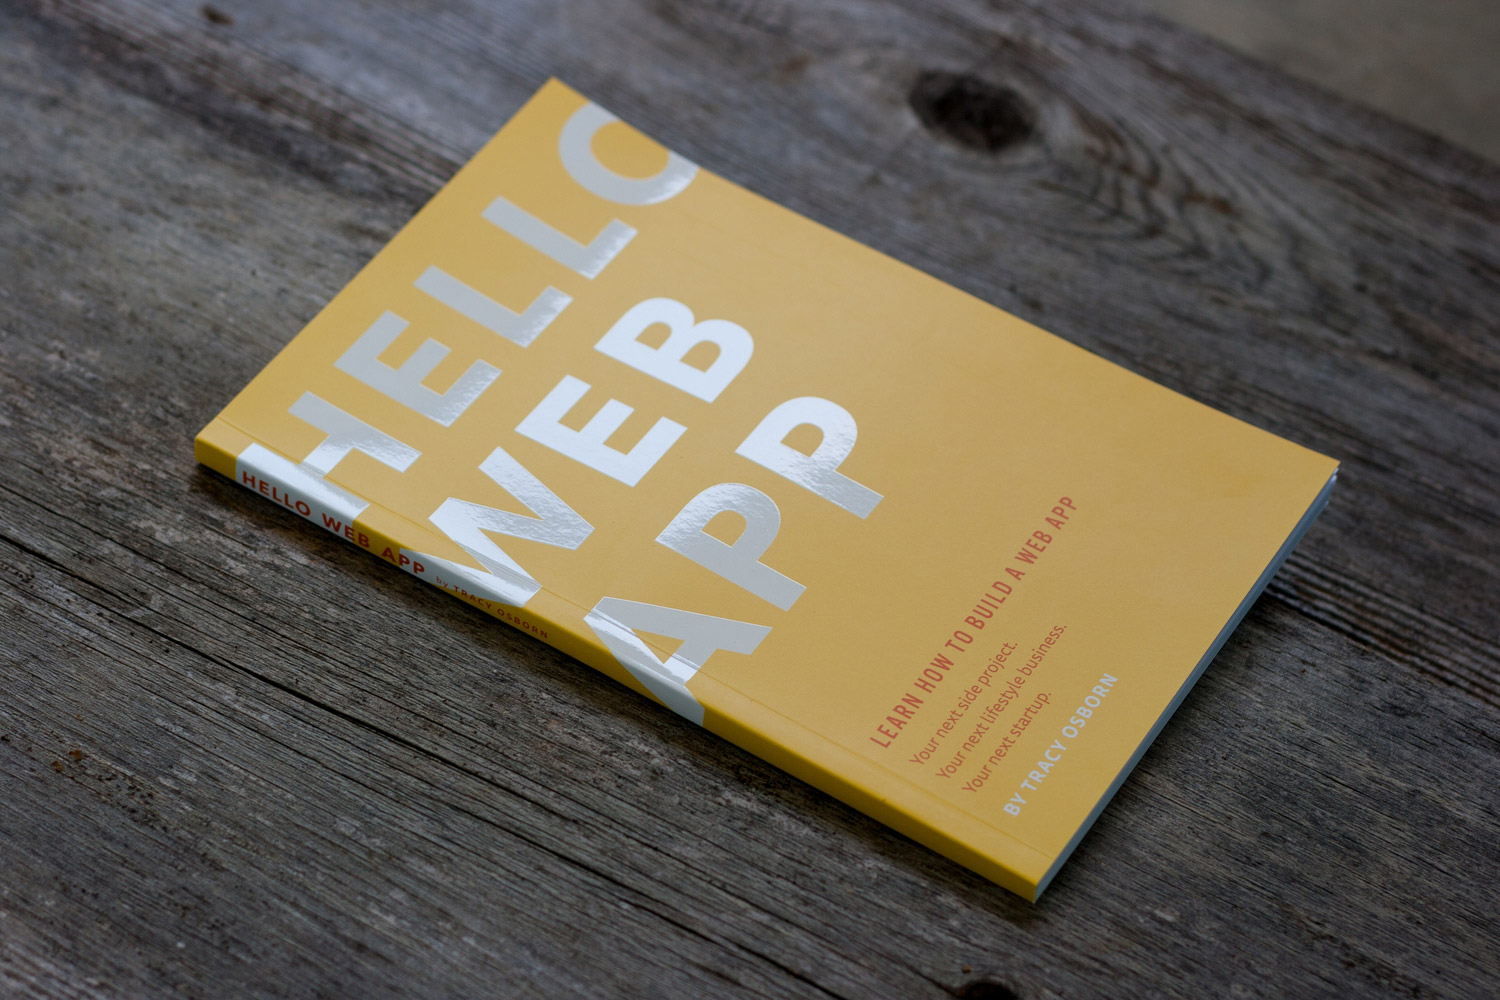 Hello Web App paperbacks are back in stock!